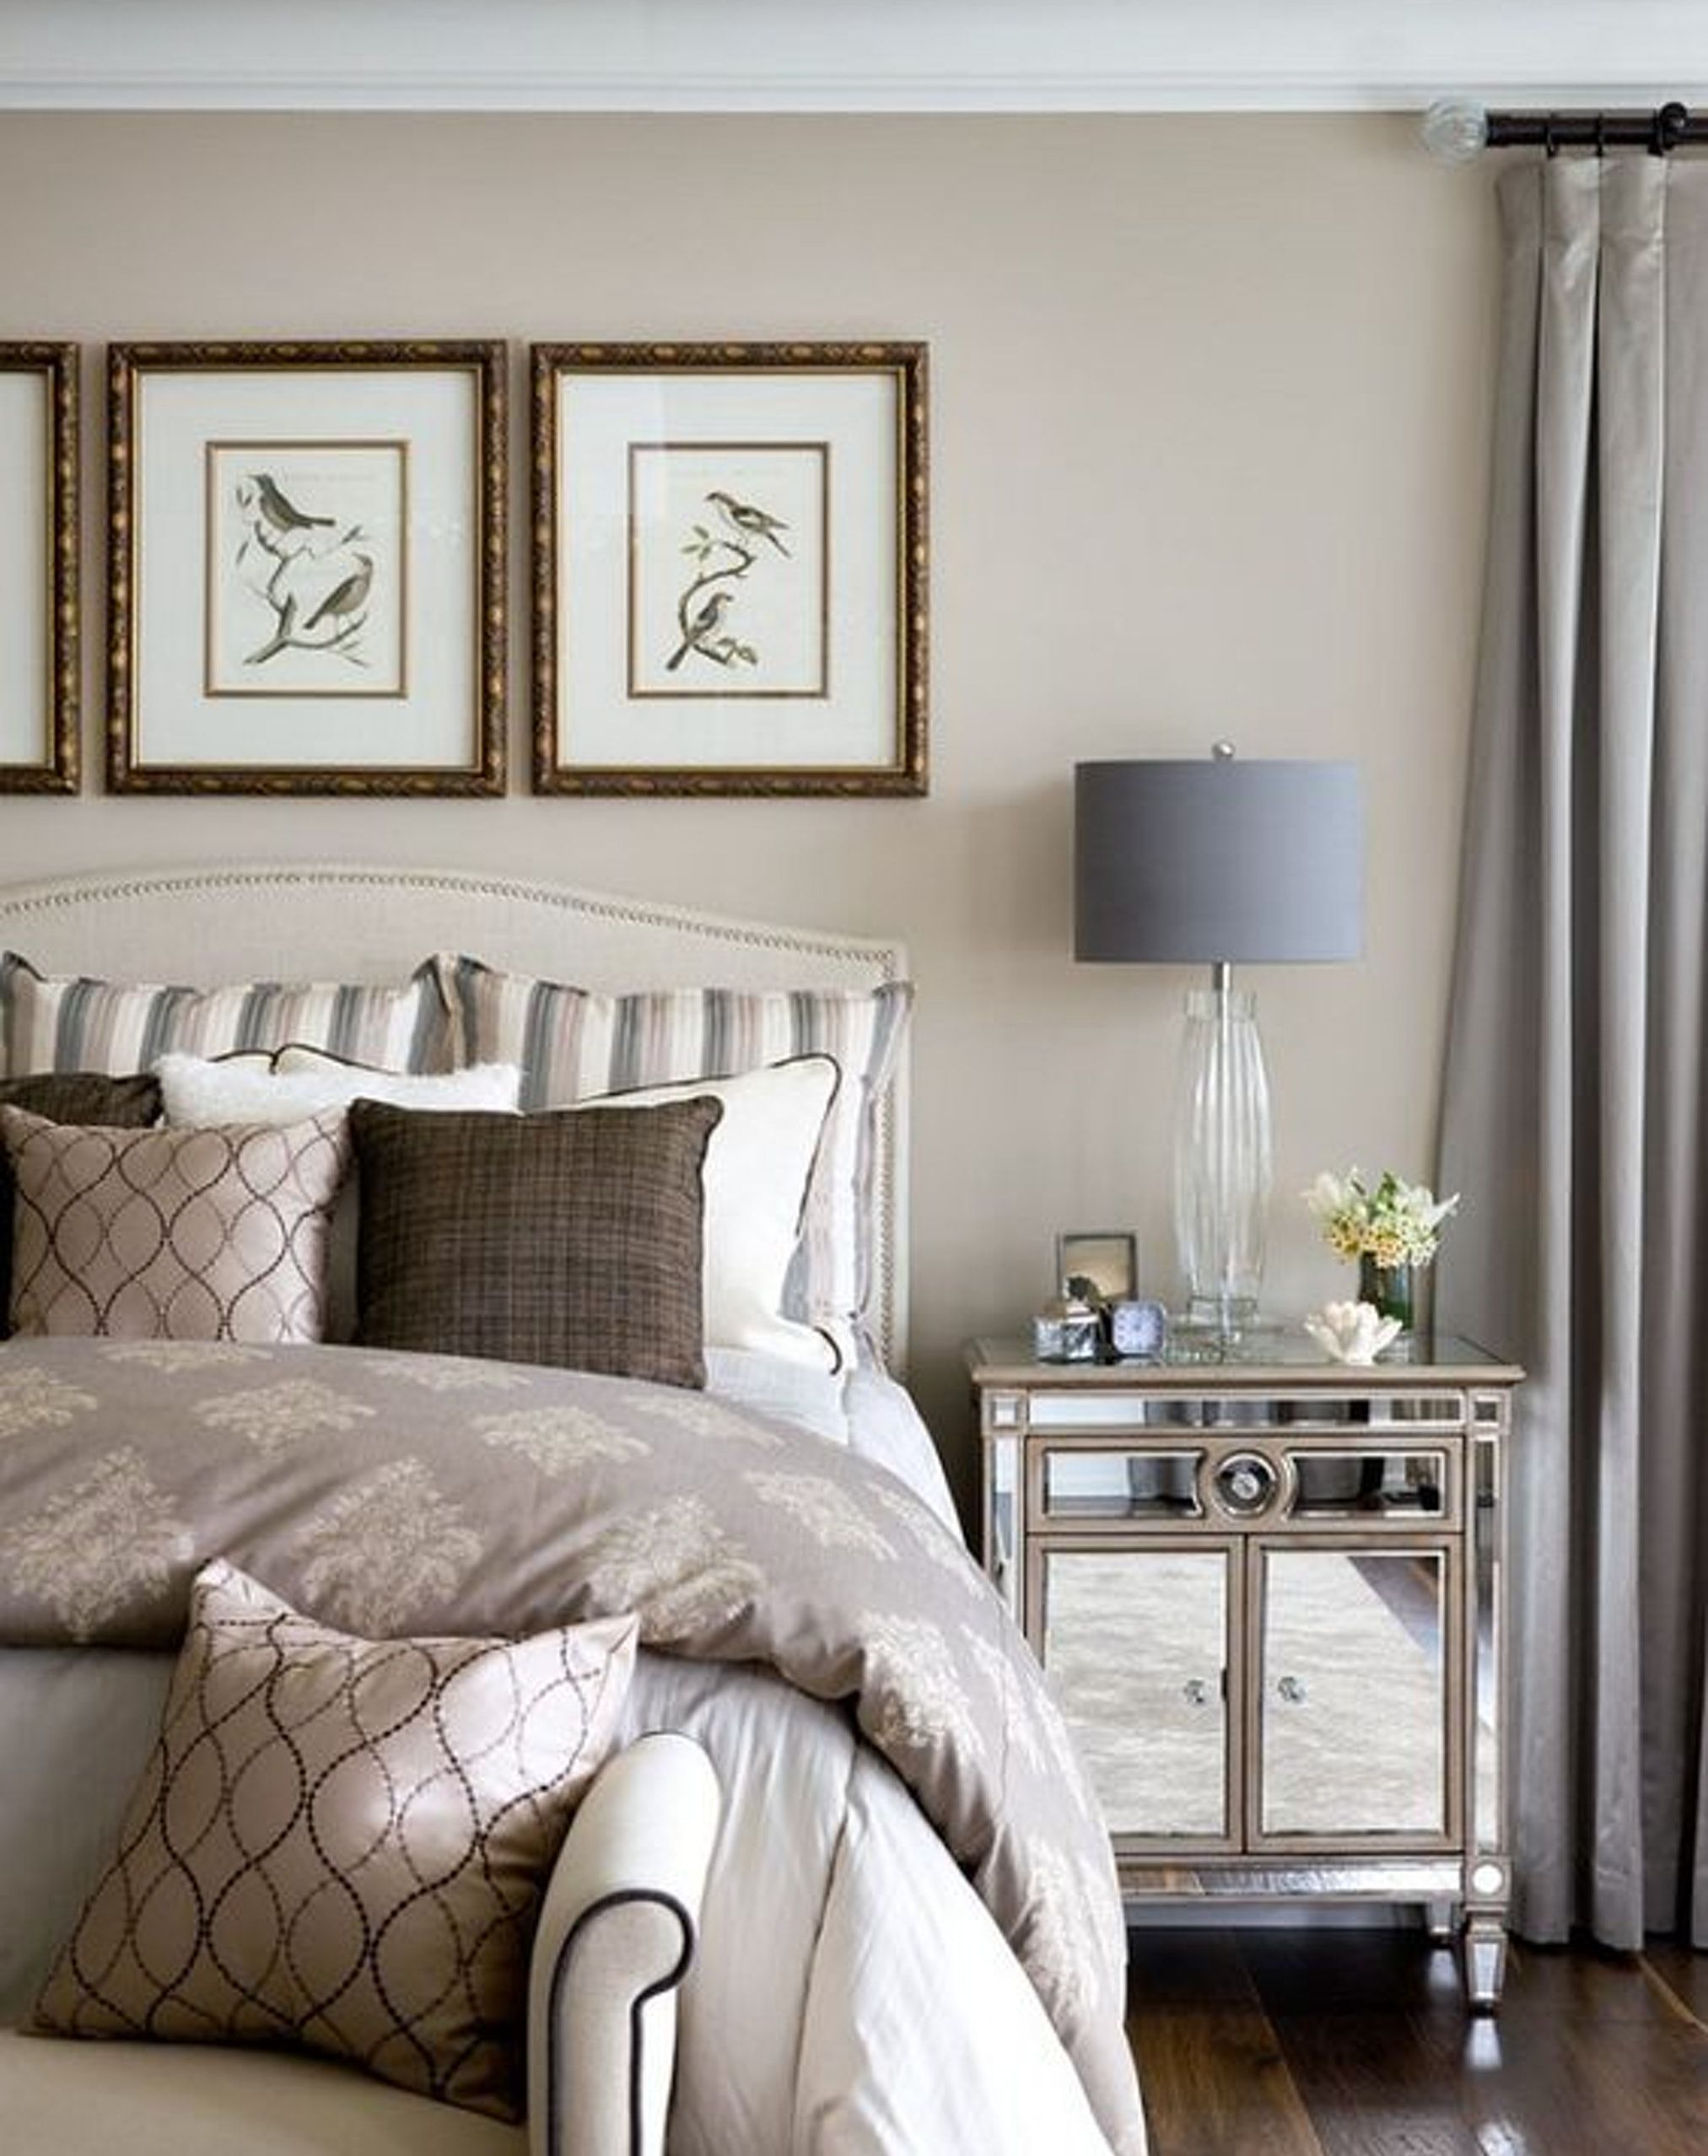 How to find your decorating style - Want To Know What Is My Decorating Style Take Havenly S Interior Design Decorating Quiz To Find Your Design Style So You Can Start Decorating Your